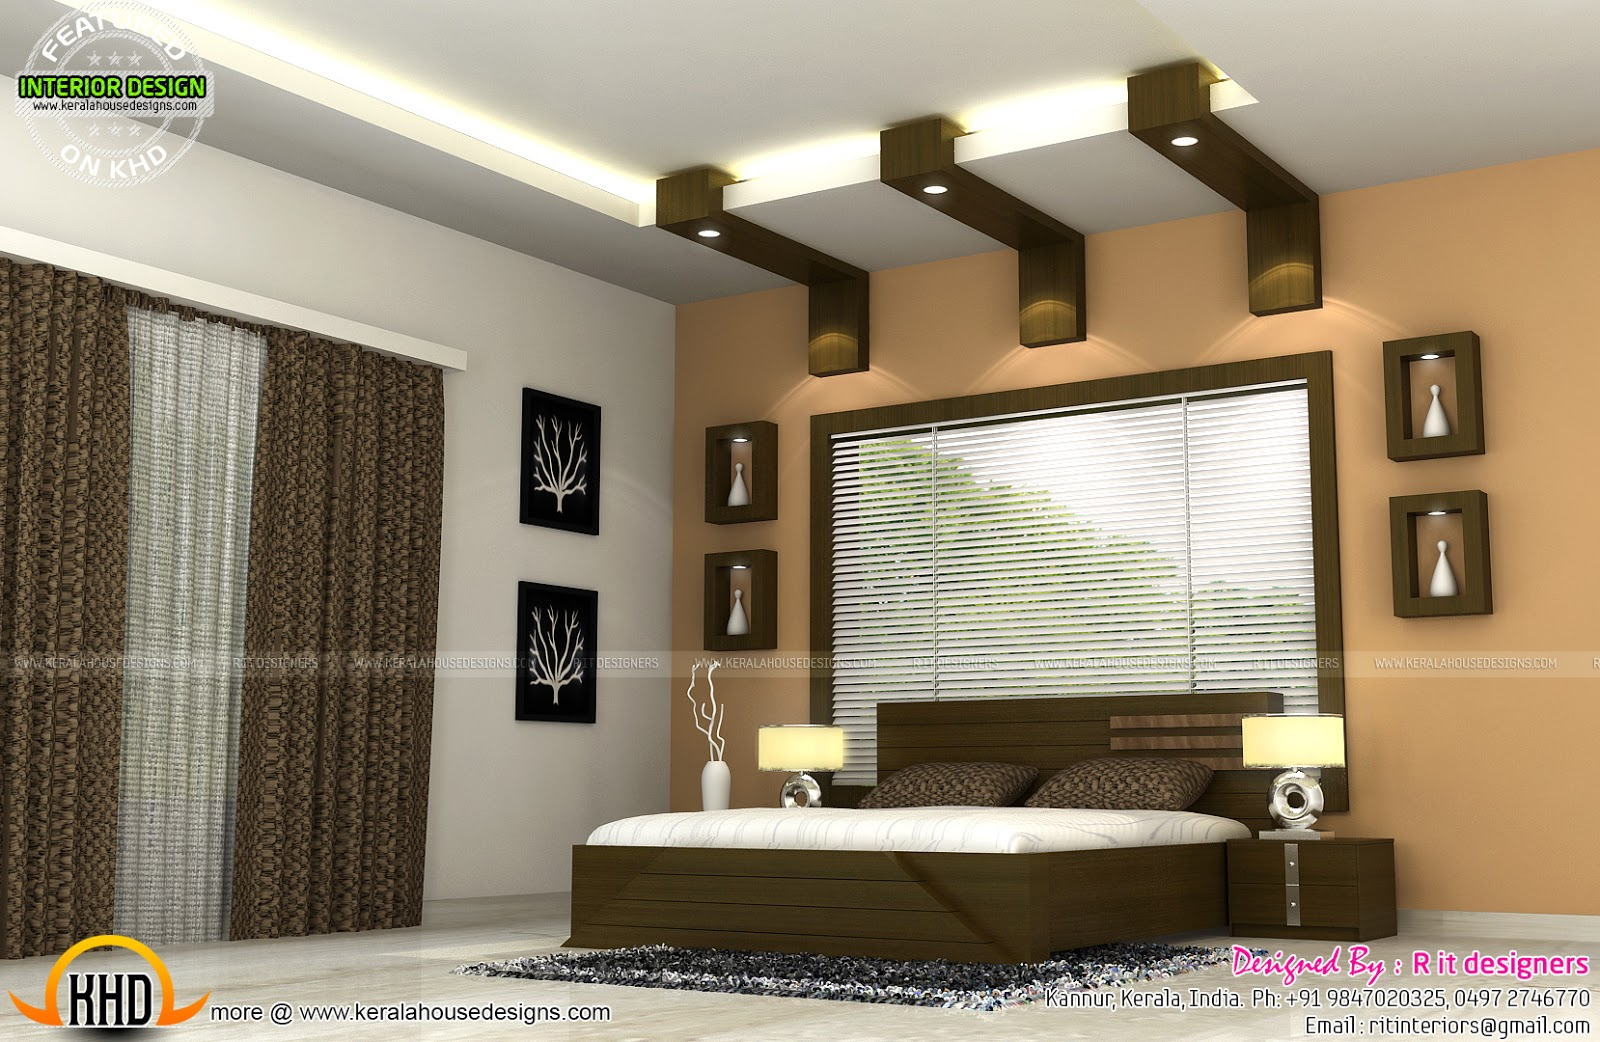 Interiors of bedrooms and kitchen kerala home design and House model interior design